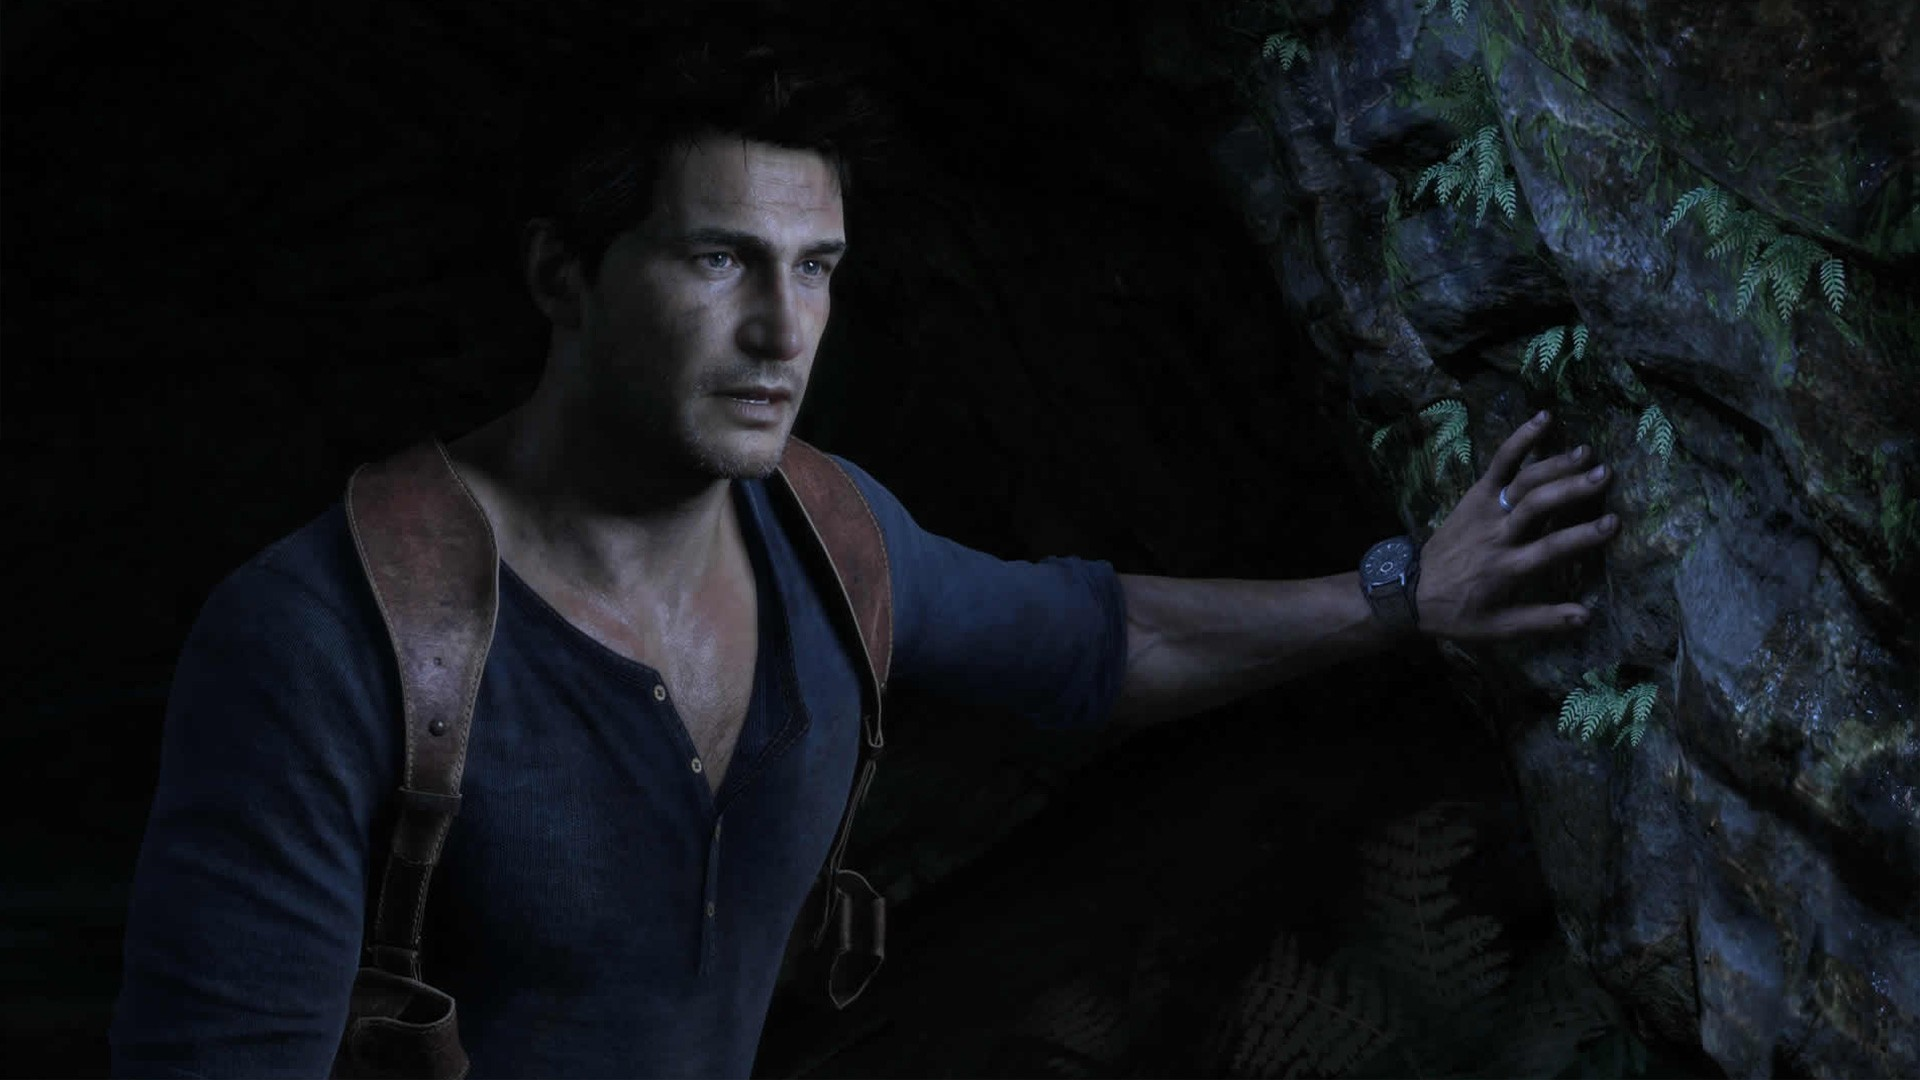 Nathan Drake: Hero or Menace?